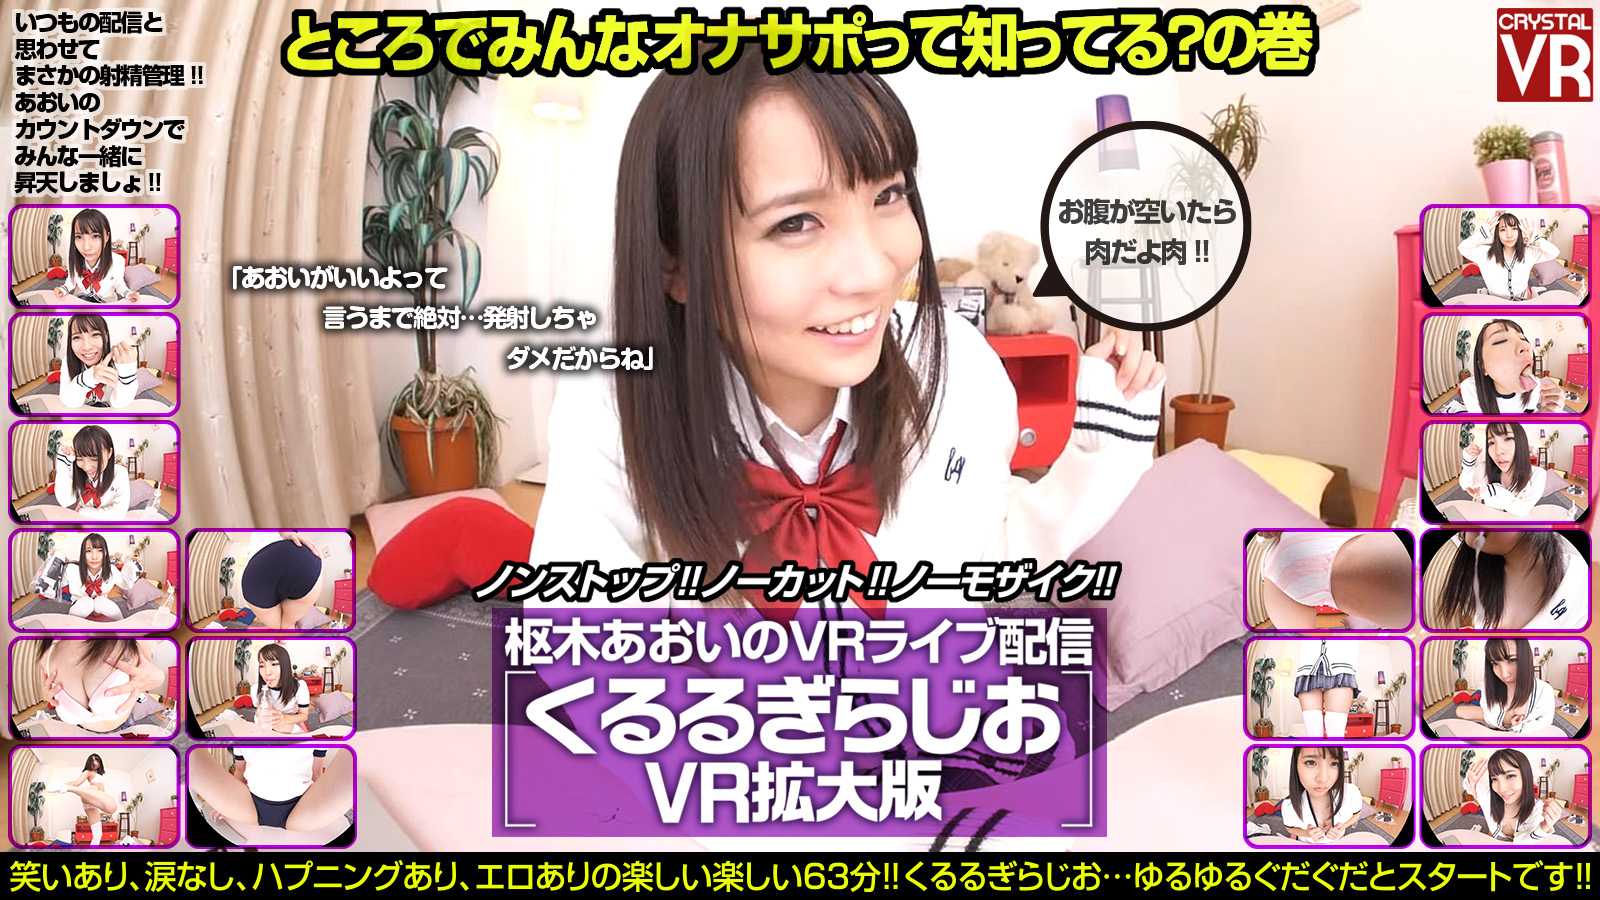 Adult VR Videos:[Standard Resolution version] VR Live stream presented to you by Aoi Kururugi